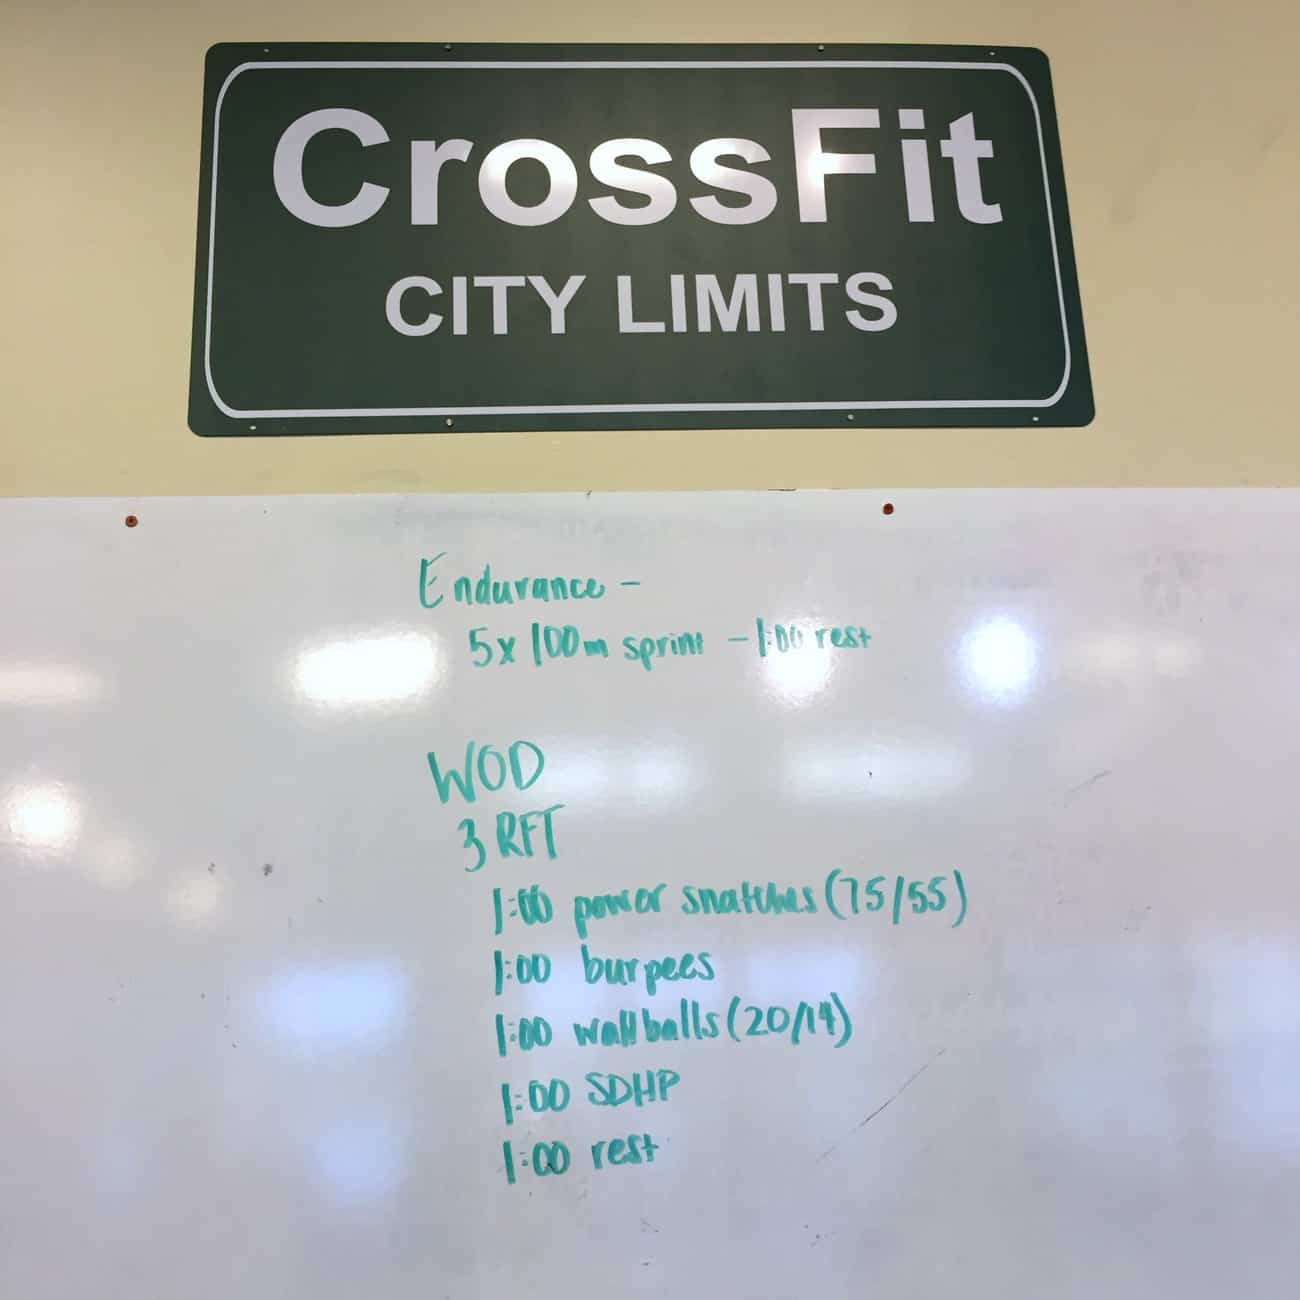 CrossFit WOD with snatches, burpees, wallballs, and high pulls